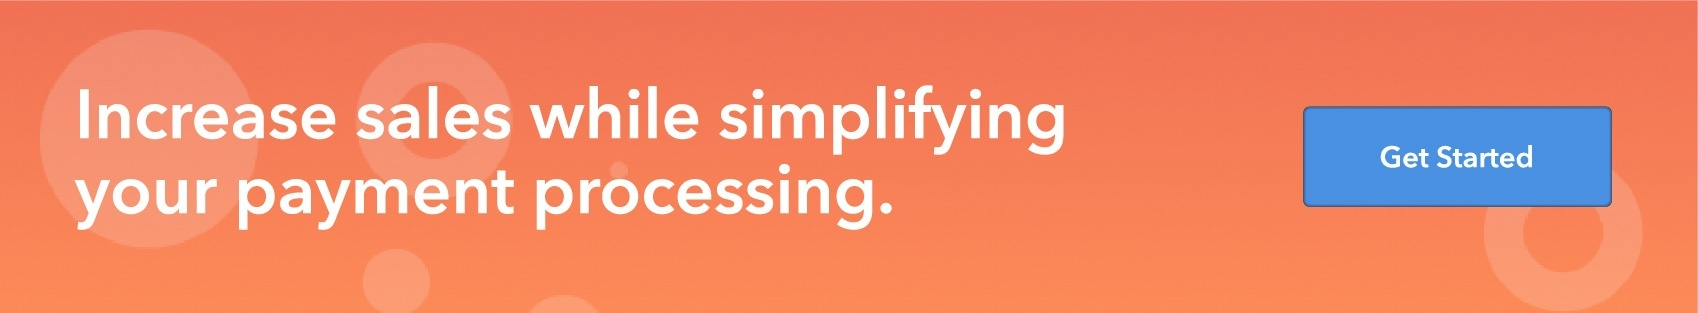 Increase sales while simplifying your payment processing